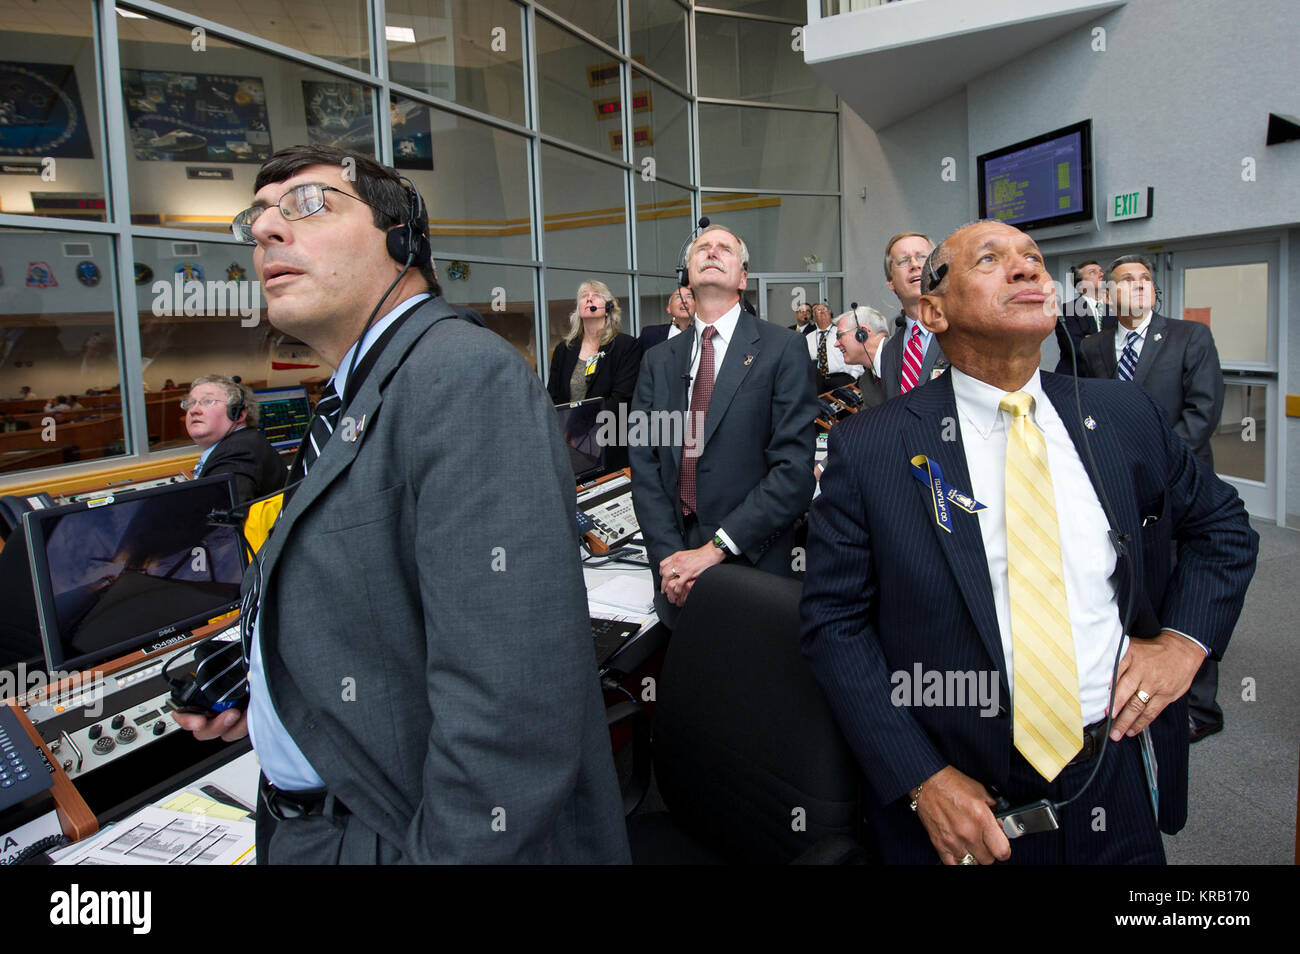 NASA Administrator Charles Bolden, right, Associate Administrator for Space Operations William Gerstenmaier, center, - Stock Image